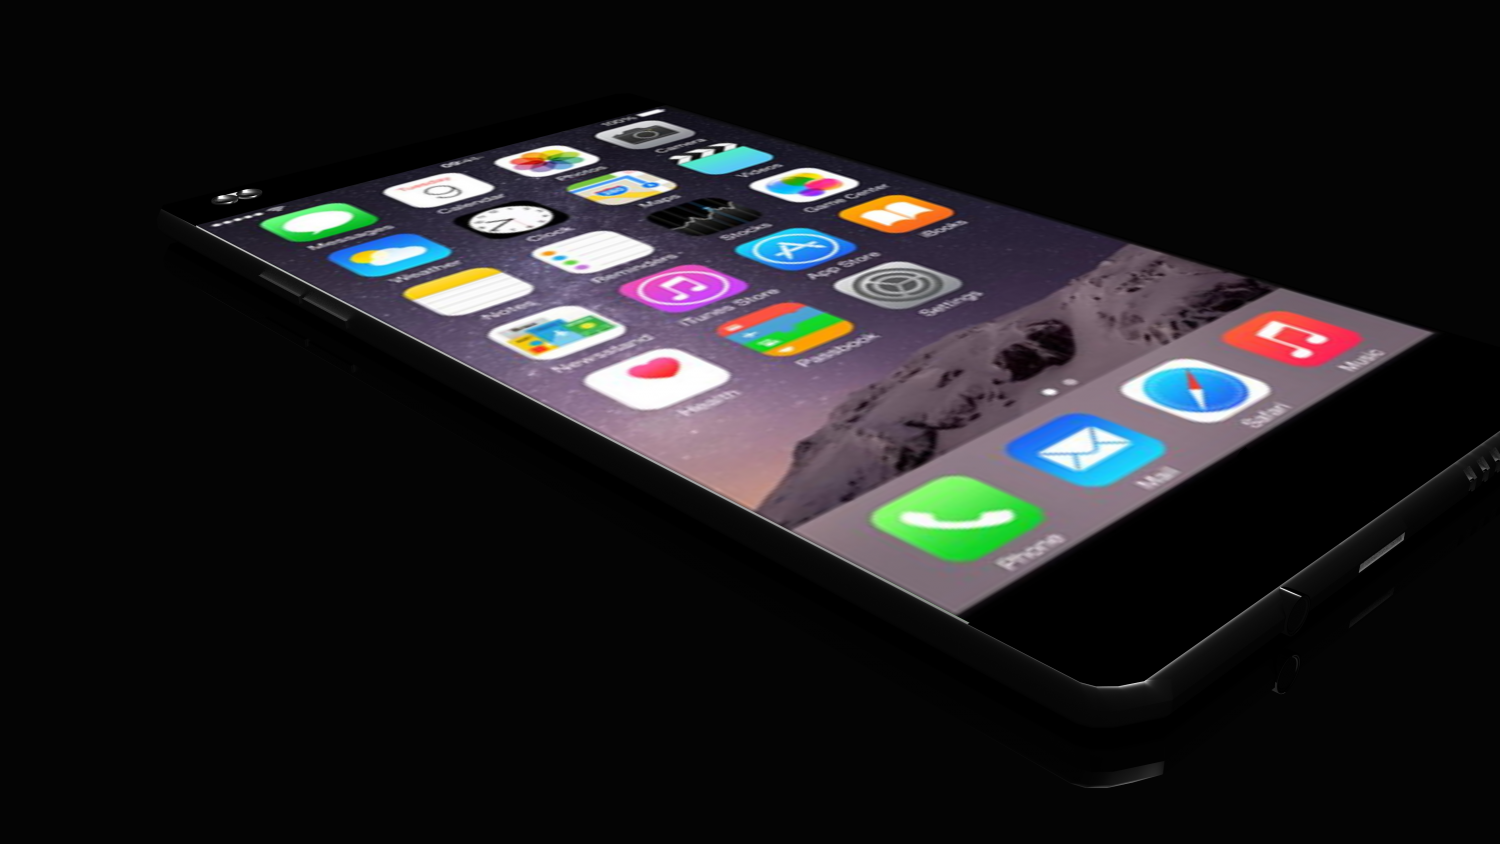 Concept iphone 7 free 3d model download